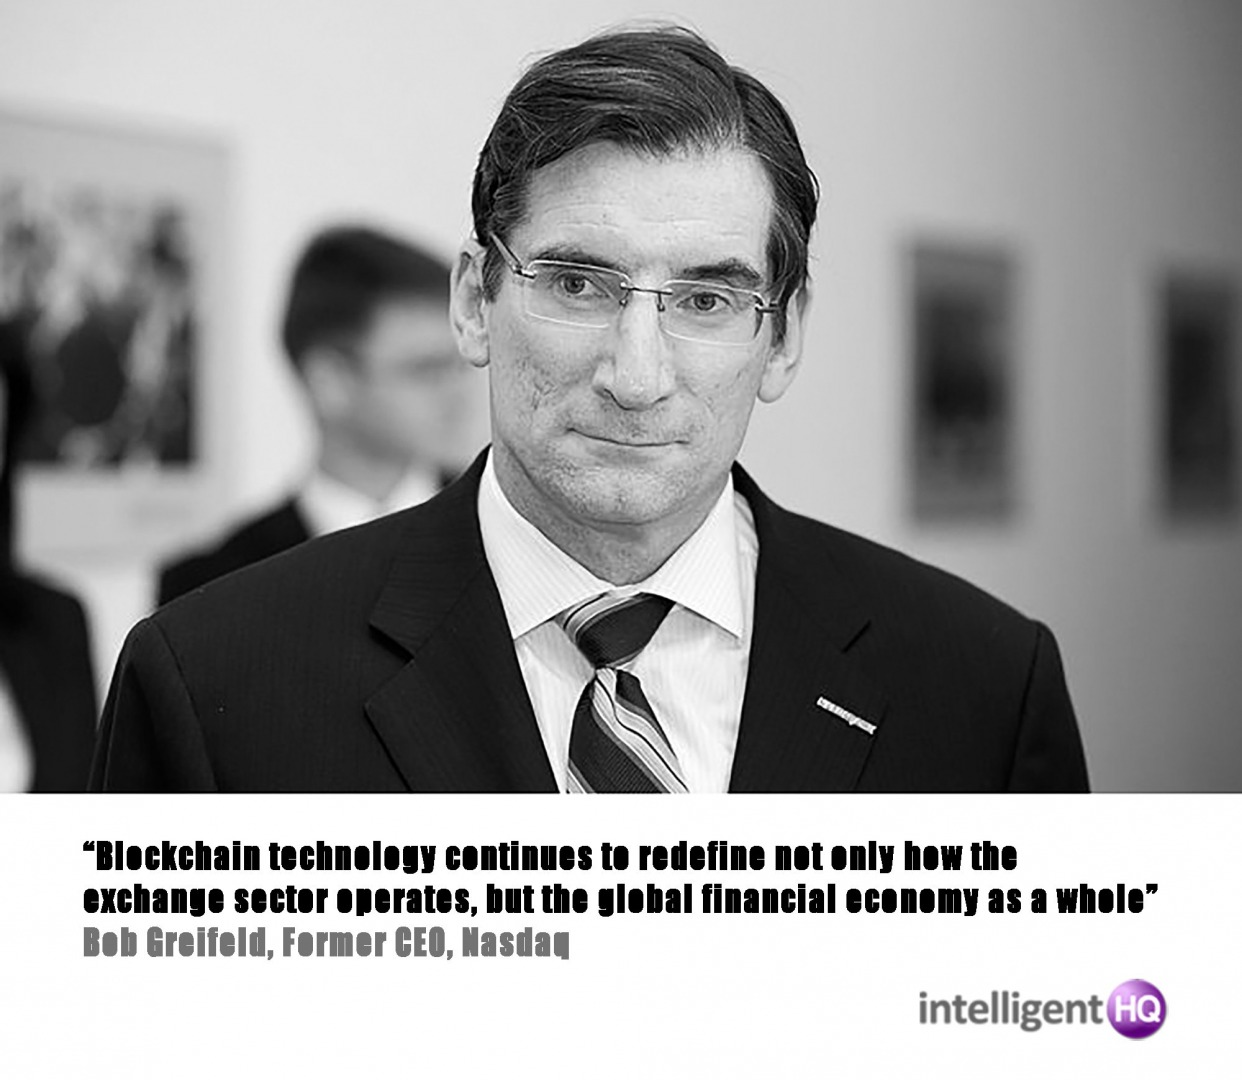 """Blockchain technology continues to redefine not only how the exchange sector operates, but the global financial economy as a whole"" Bob Greifeld, CEO, Nasdaq."